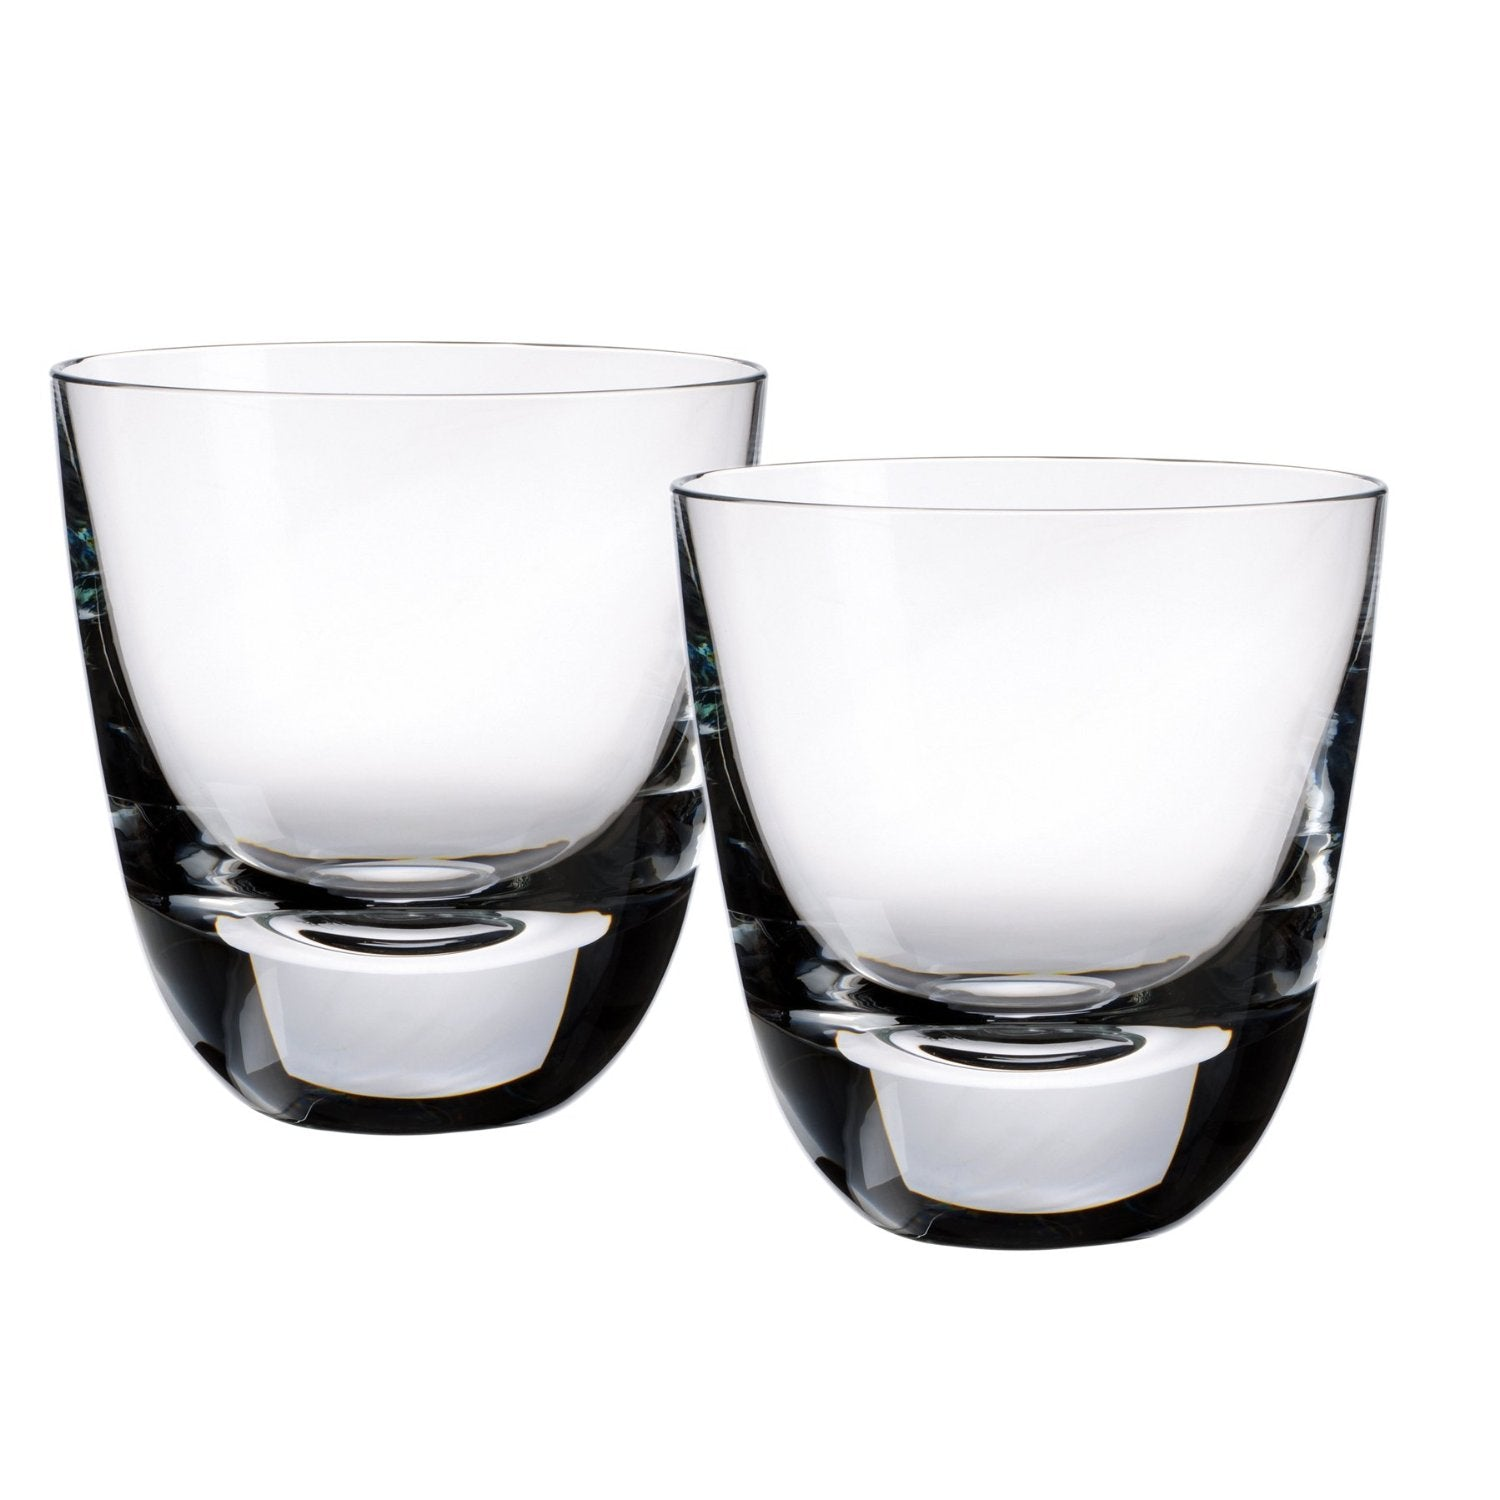 Villeroy & Boch American Bar Straight Bourbon 3-3/4 Inch Old Fashioned Tumbler, Set of 2